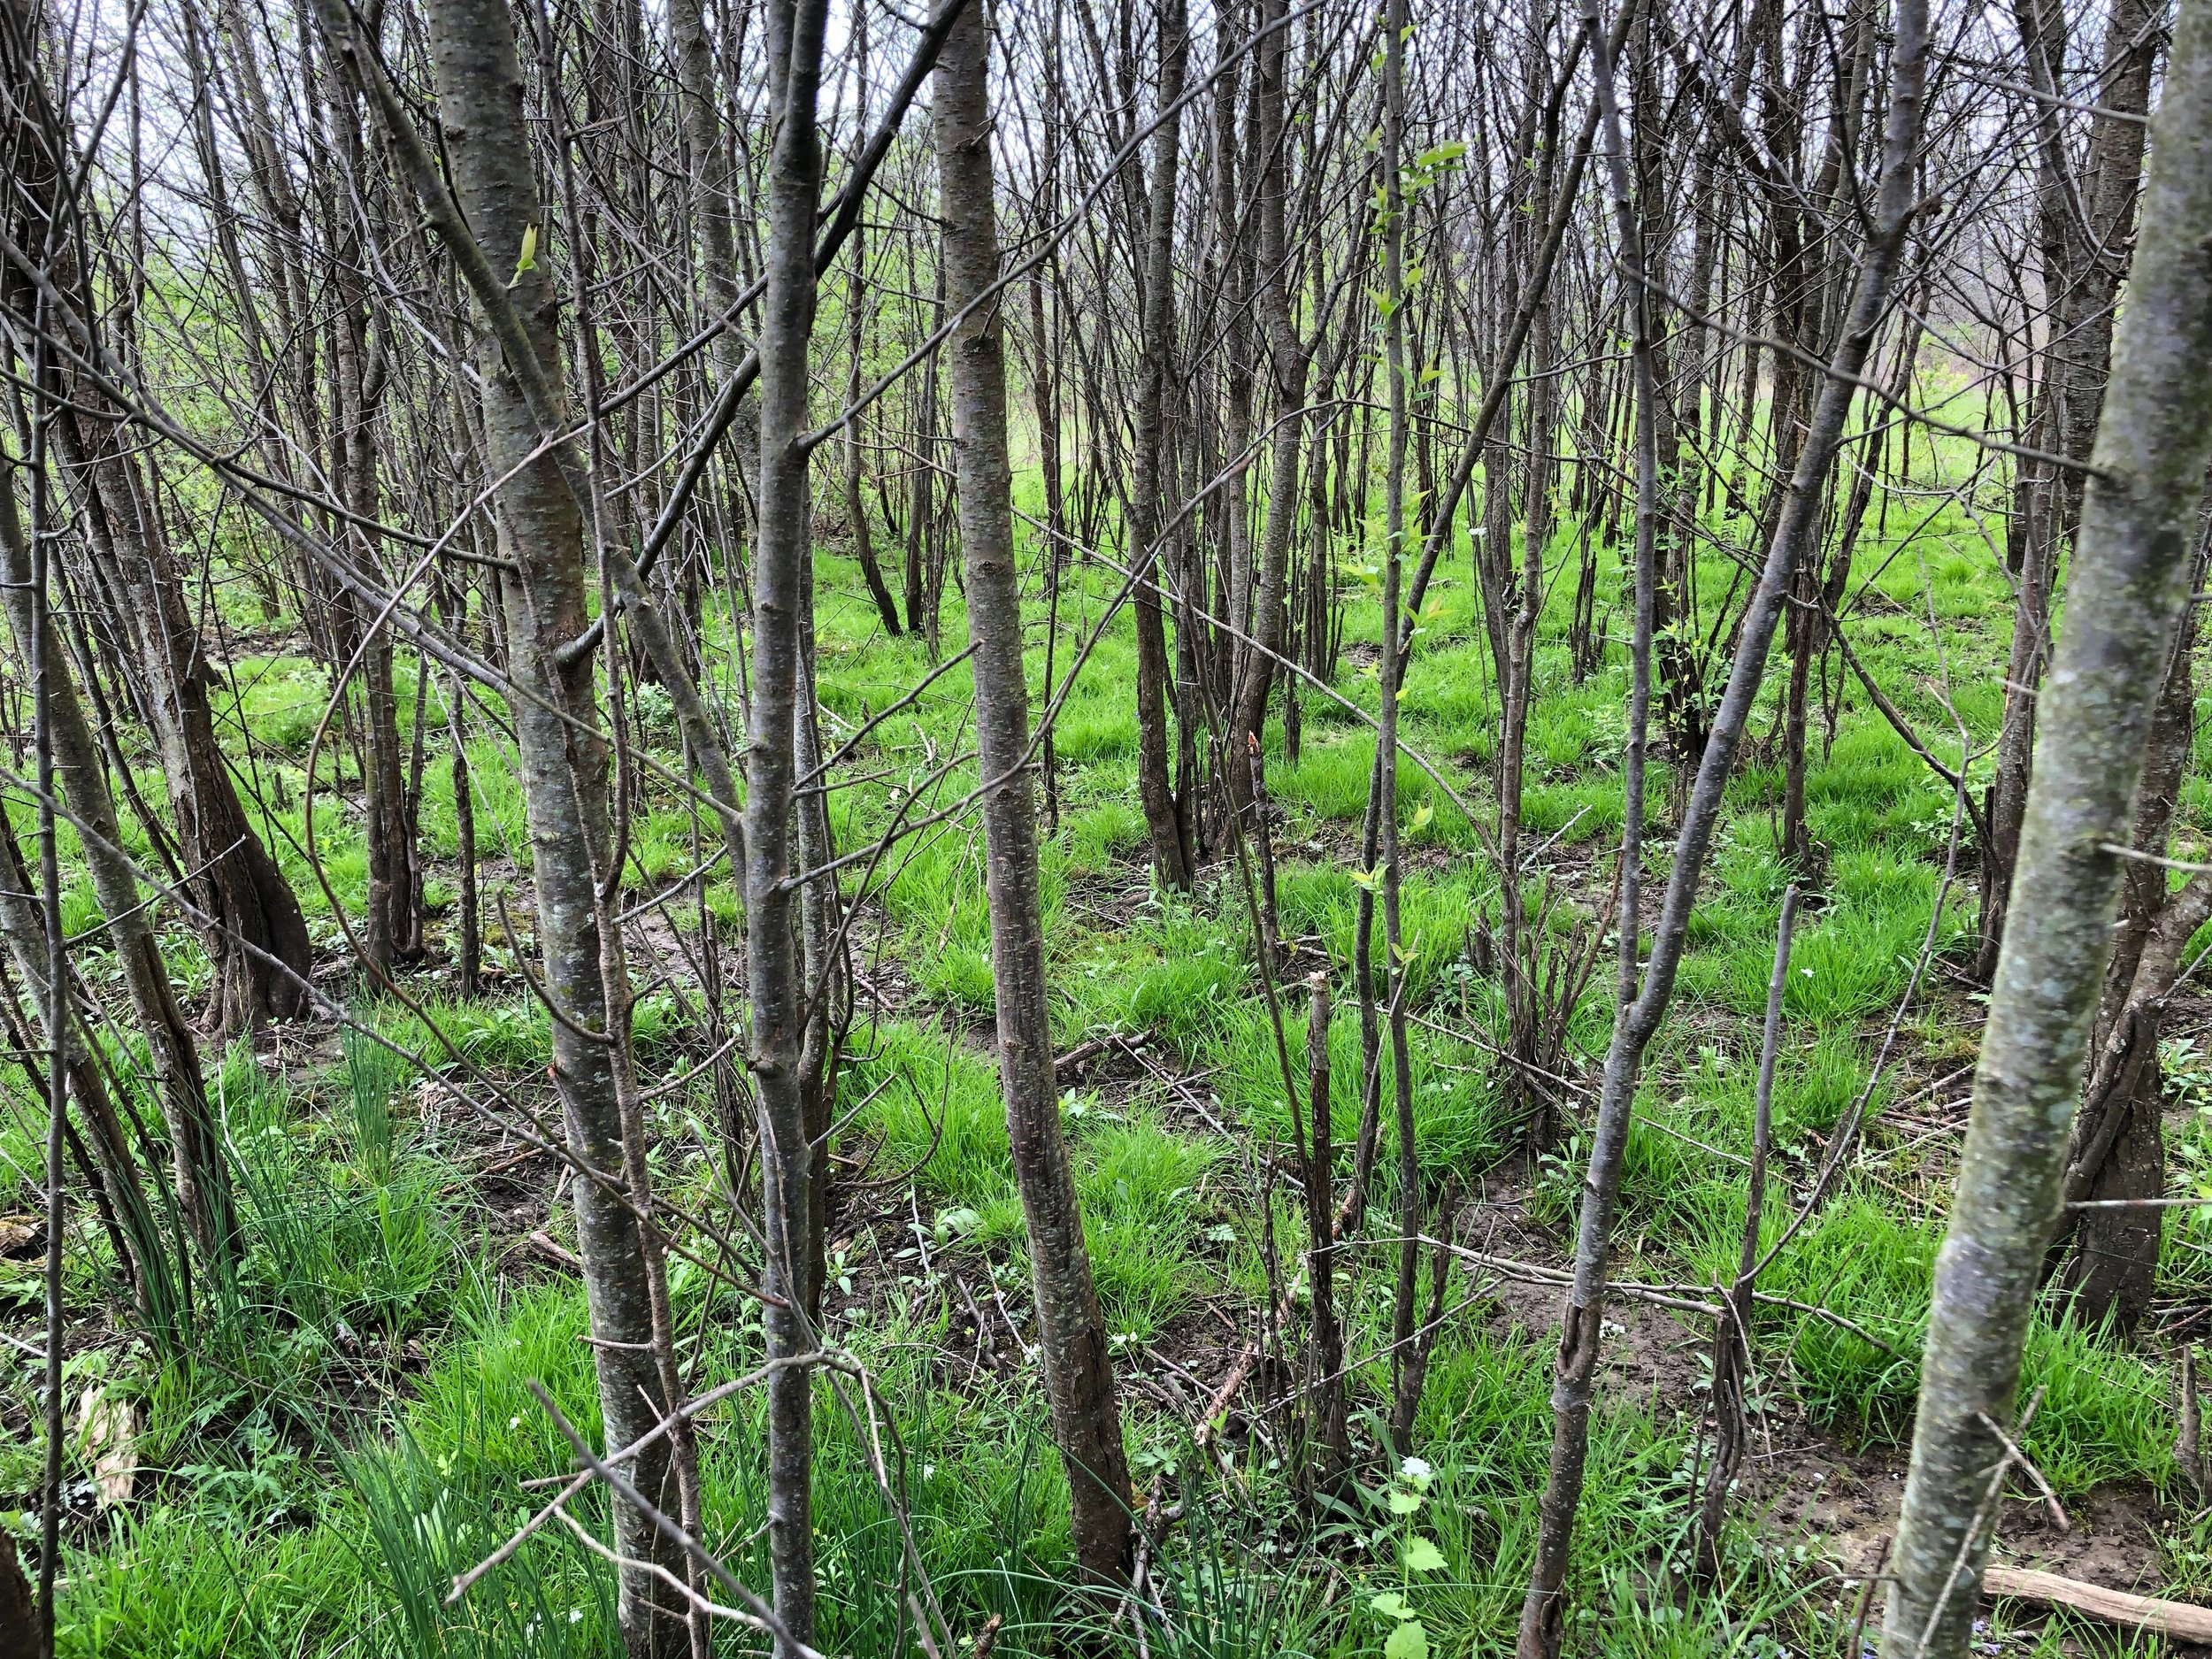 It is thought that native thickets are prone to invasion due to remnant populations often being draped in invasive plants, but this is a misinterpretation of the landscape. Most often native thickets are limited to artificial edges where they can't form an interior as pictured above. When native thickets are allowed to form continuous unfragmented communities within open landscapes, they close the niche to invasive woody plants like this Quapaw Wild Plum (Prunus hortulana) is demonstrating.